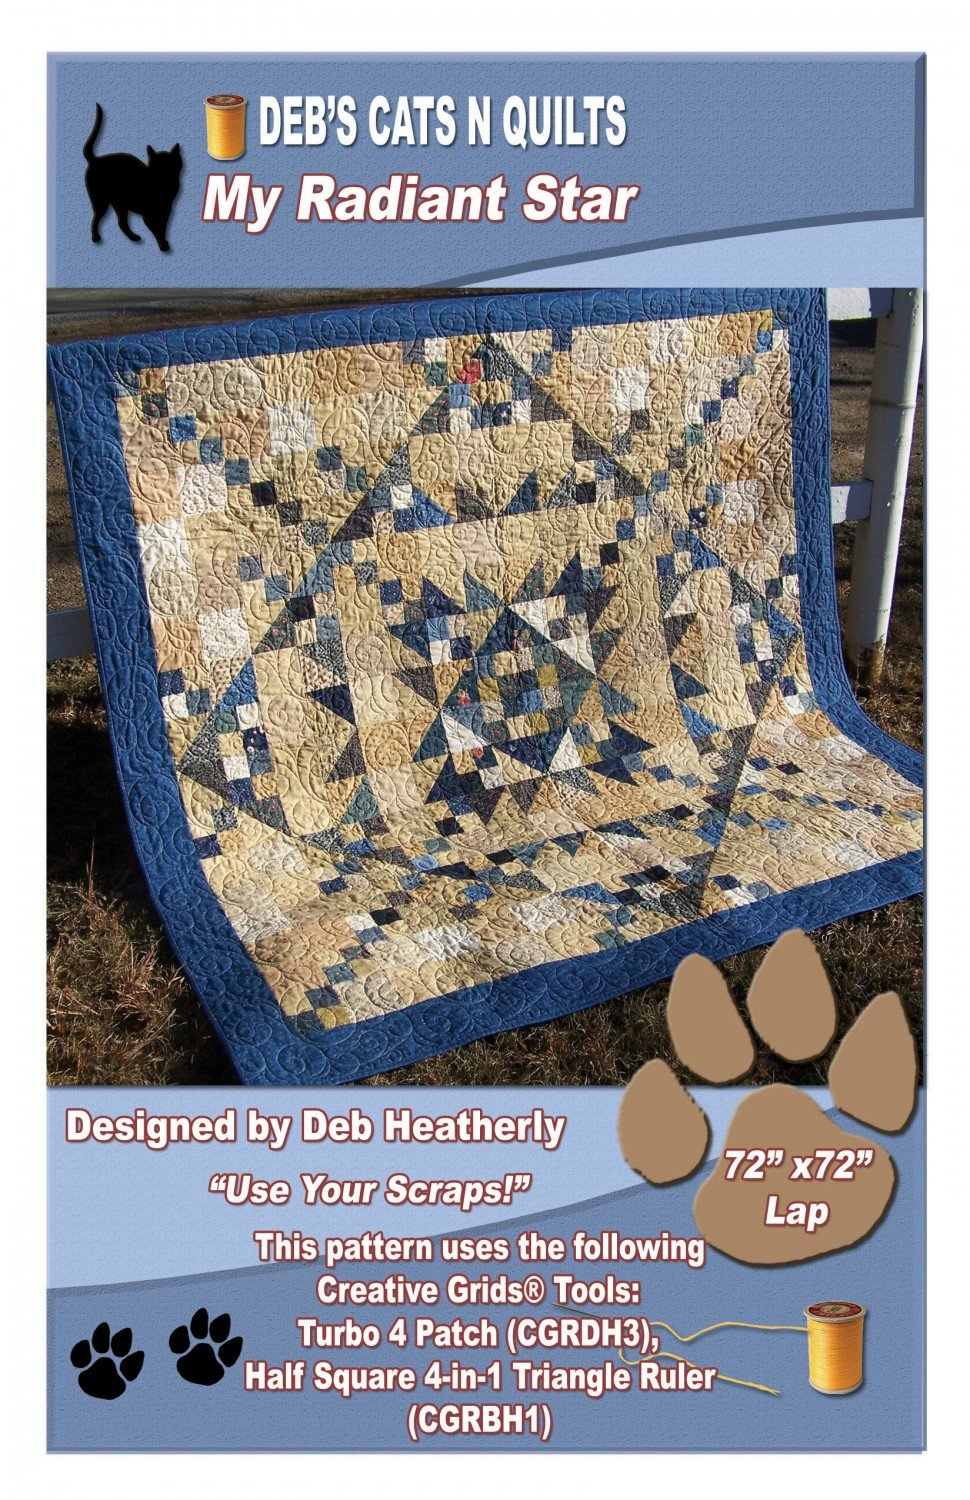 My Radiant Star from Deb's Cats N Quilts